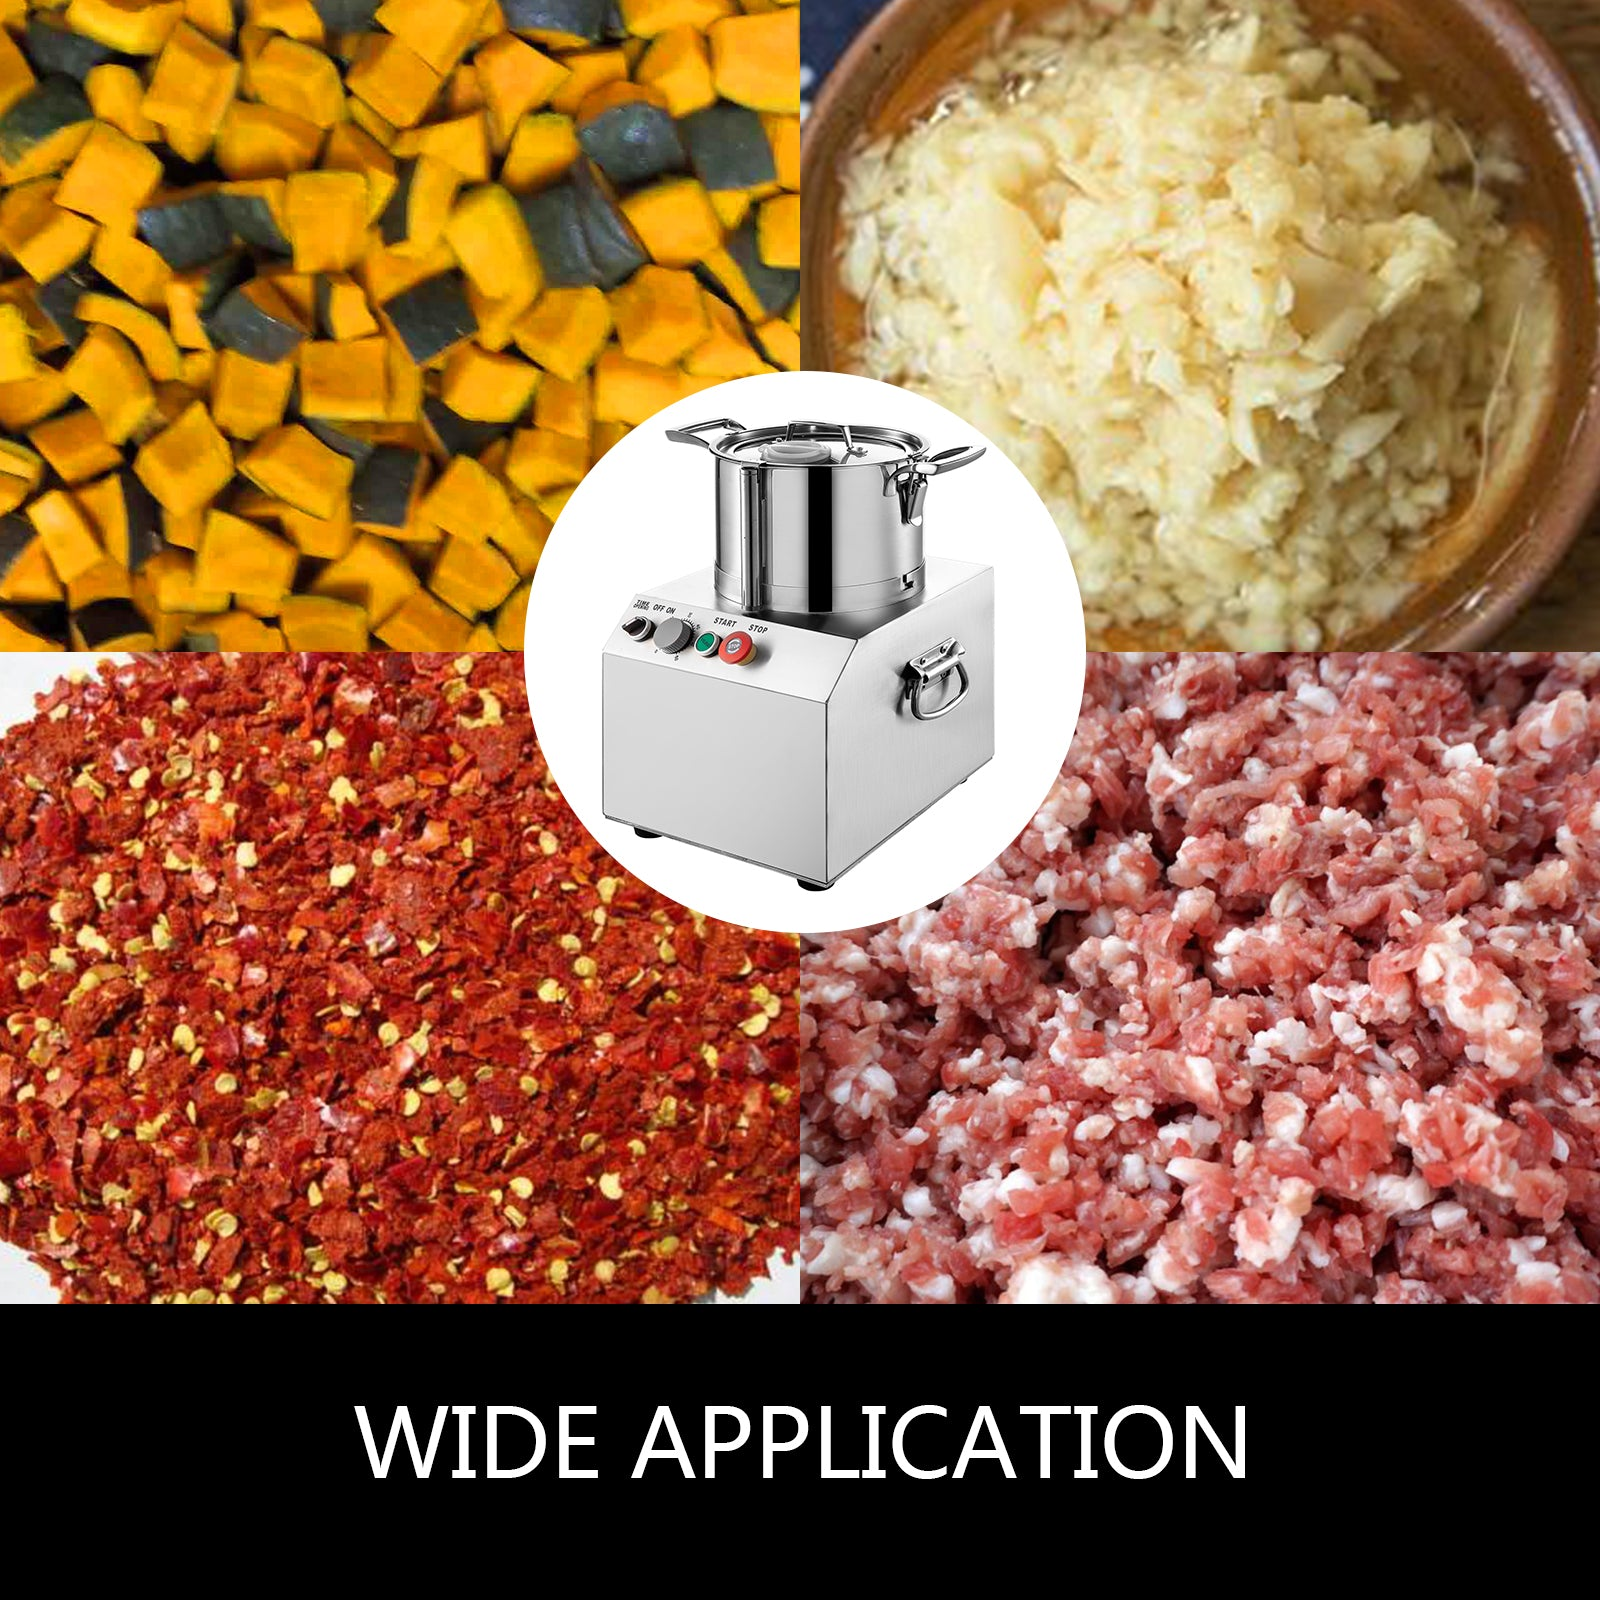 15l Commercial Food Processor Food Grinder Food Chopper S.steel Vegetable Dicer